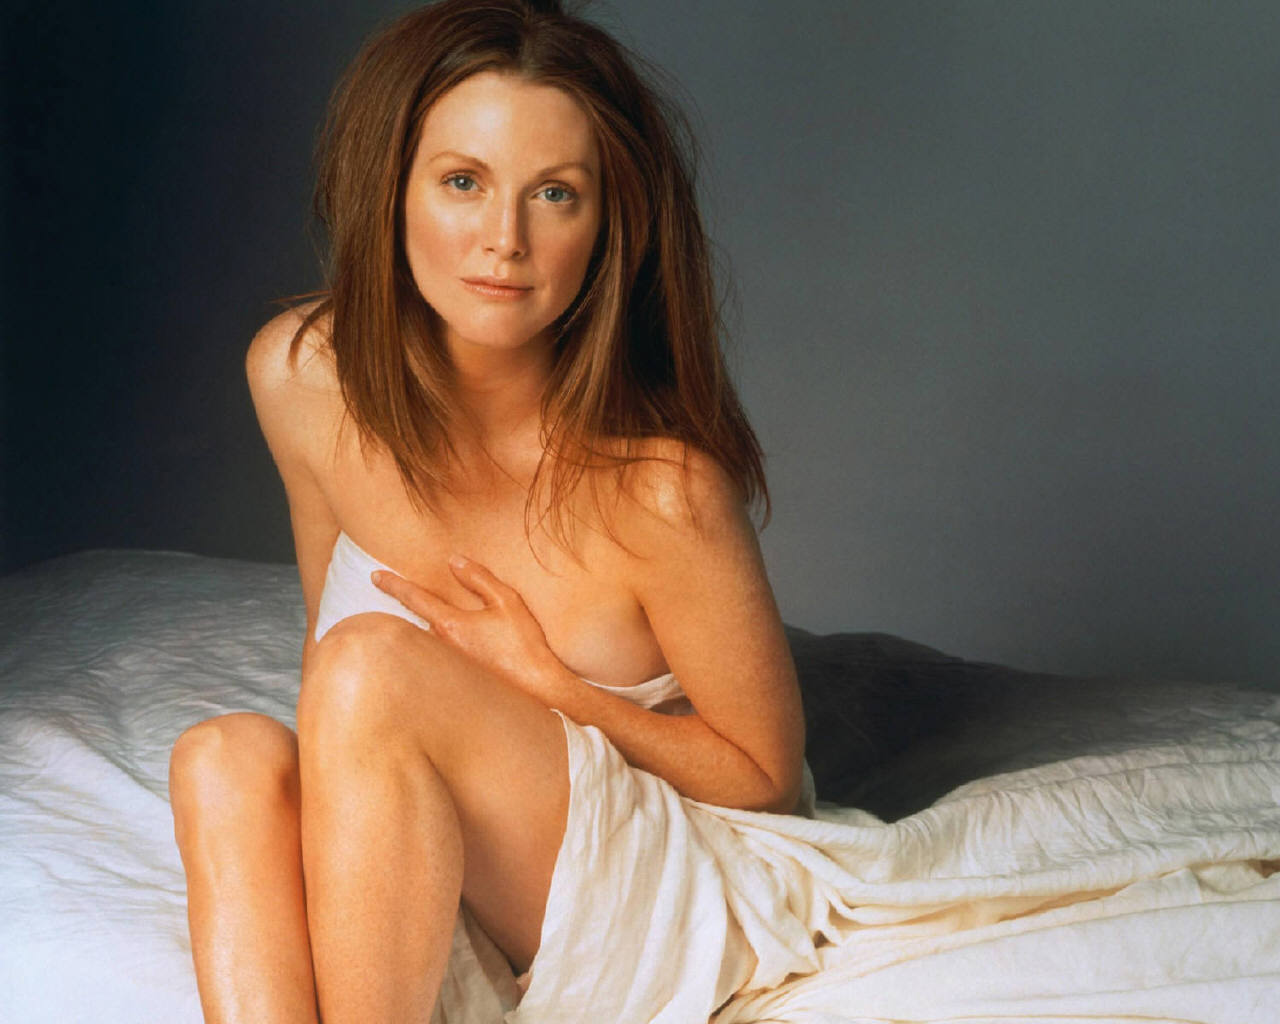 http://images.fanpop.com/images/image_uploads/Julianne-Moore-julianne-moore-253334_1280_1024.jpg